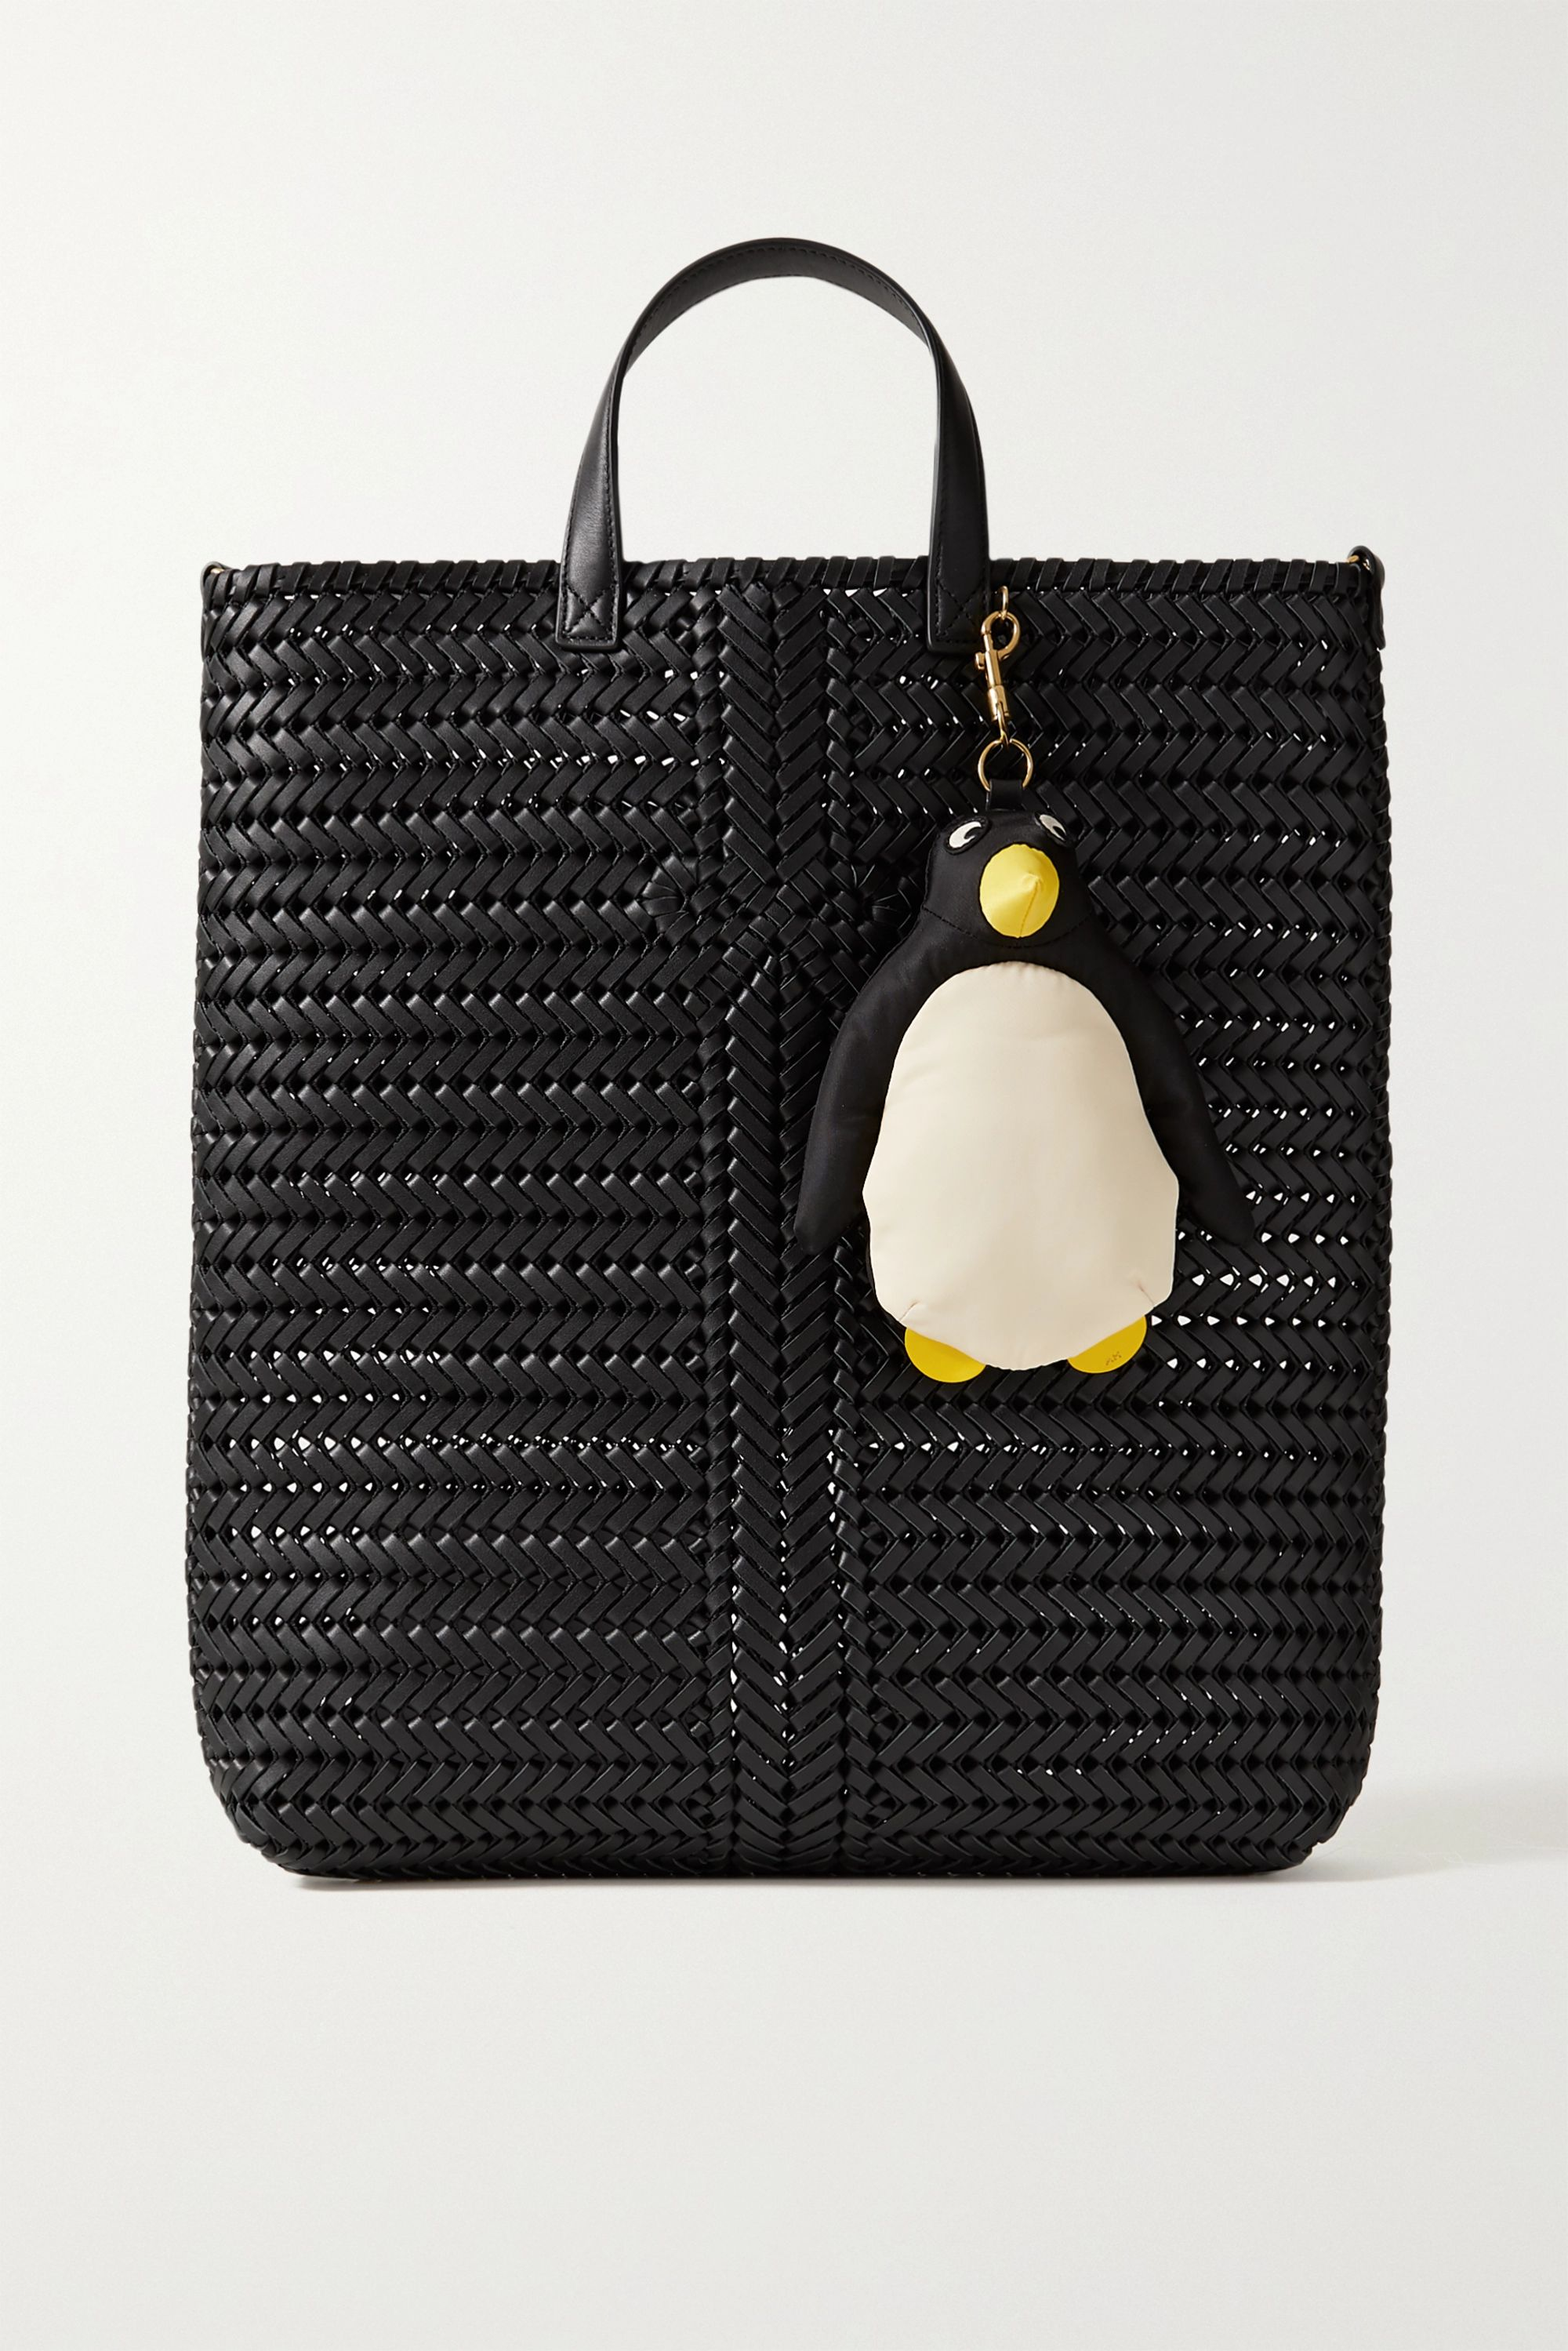 Anya Hindmarch Shopper Penguin leather-trimmed shell bag charm